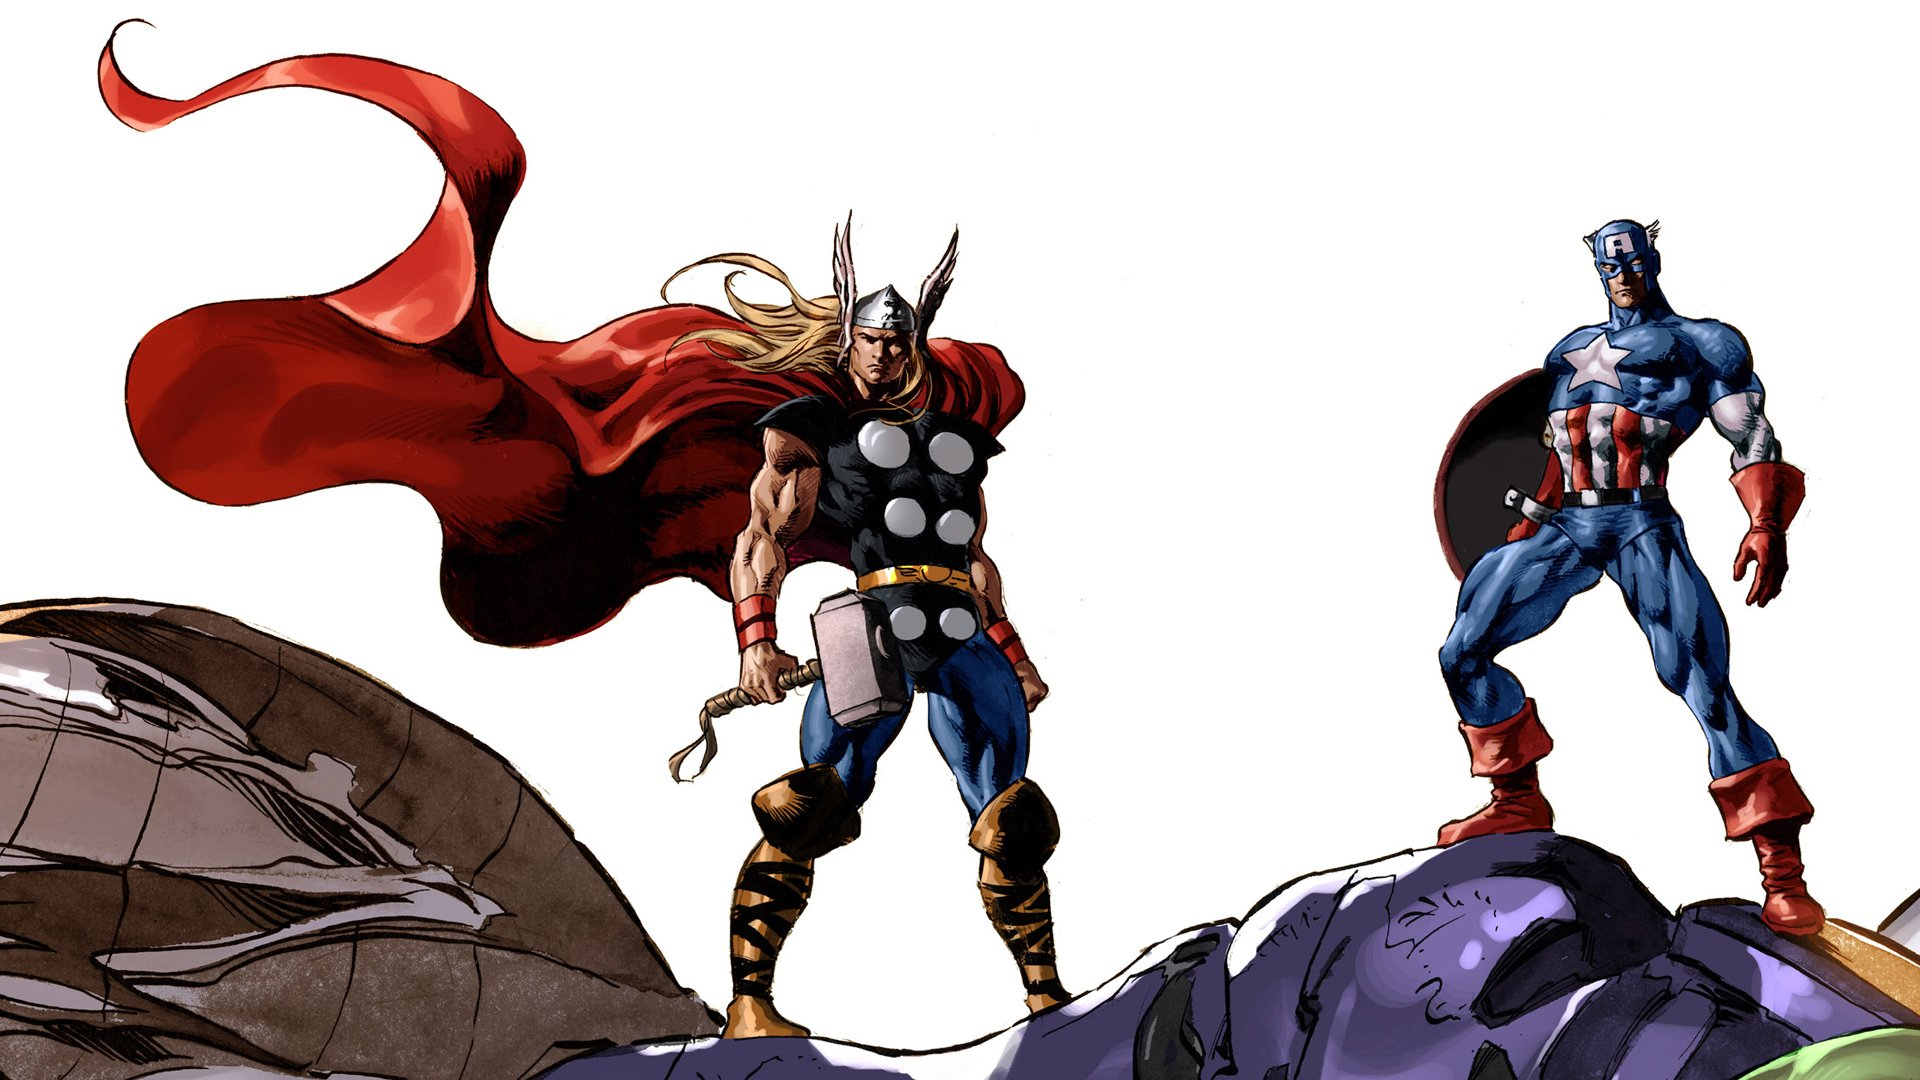 Download Wallpaper Marvel Thor - 91a218932005655a8dc47d66b516e112  Collection_463097.jpg